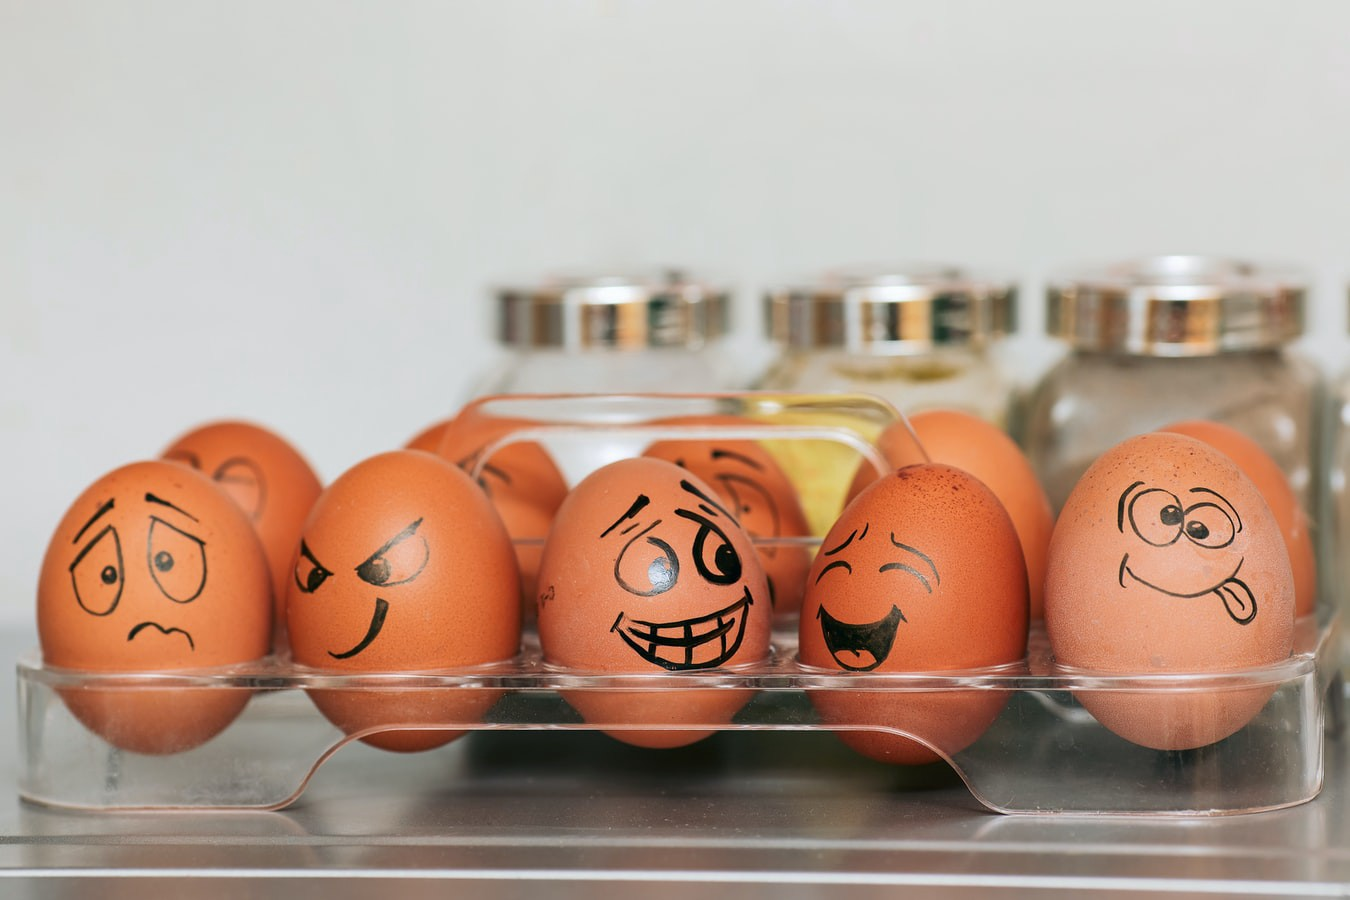 Eggs with faces of different emotions drawn on them, sitting in a transparent holder.